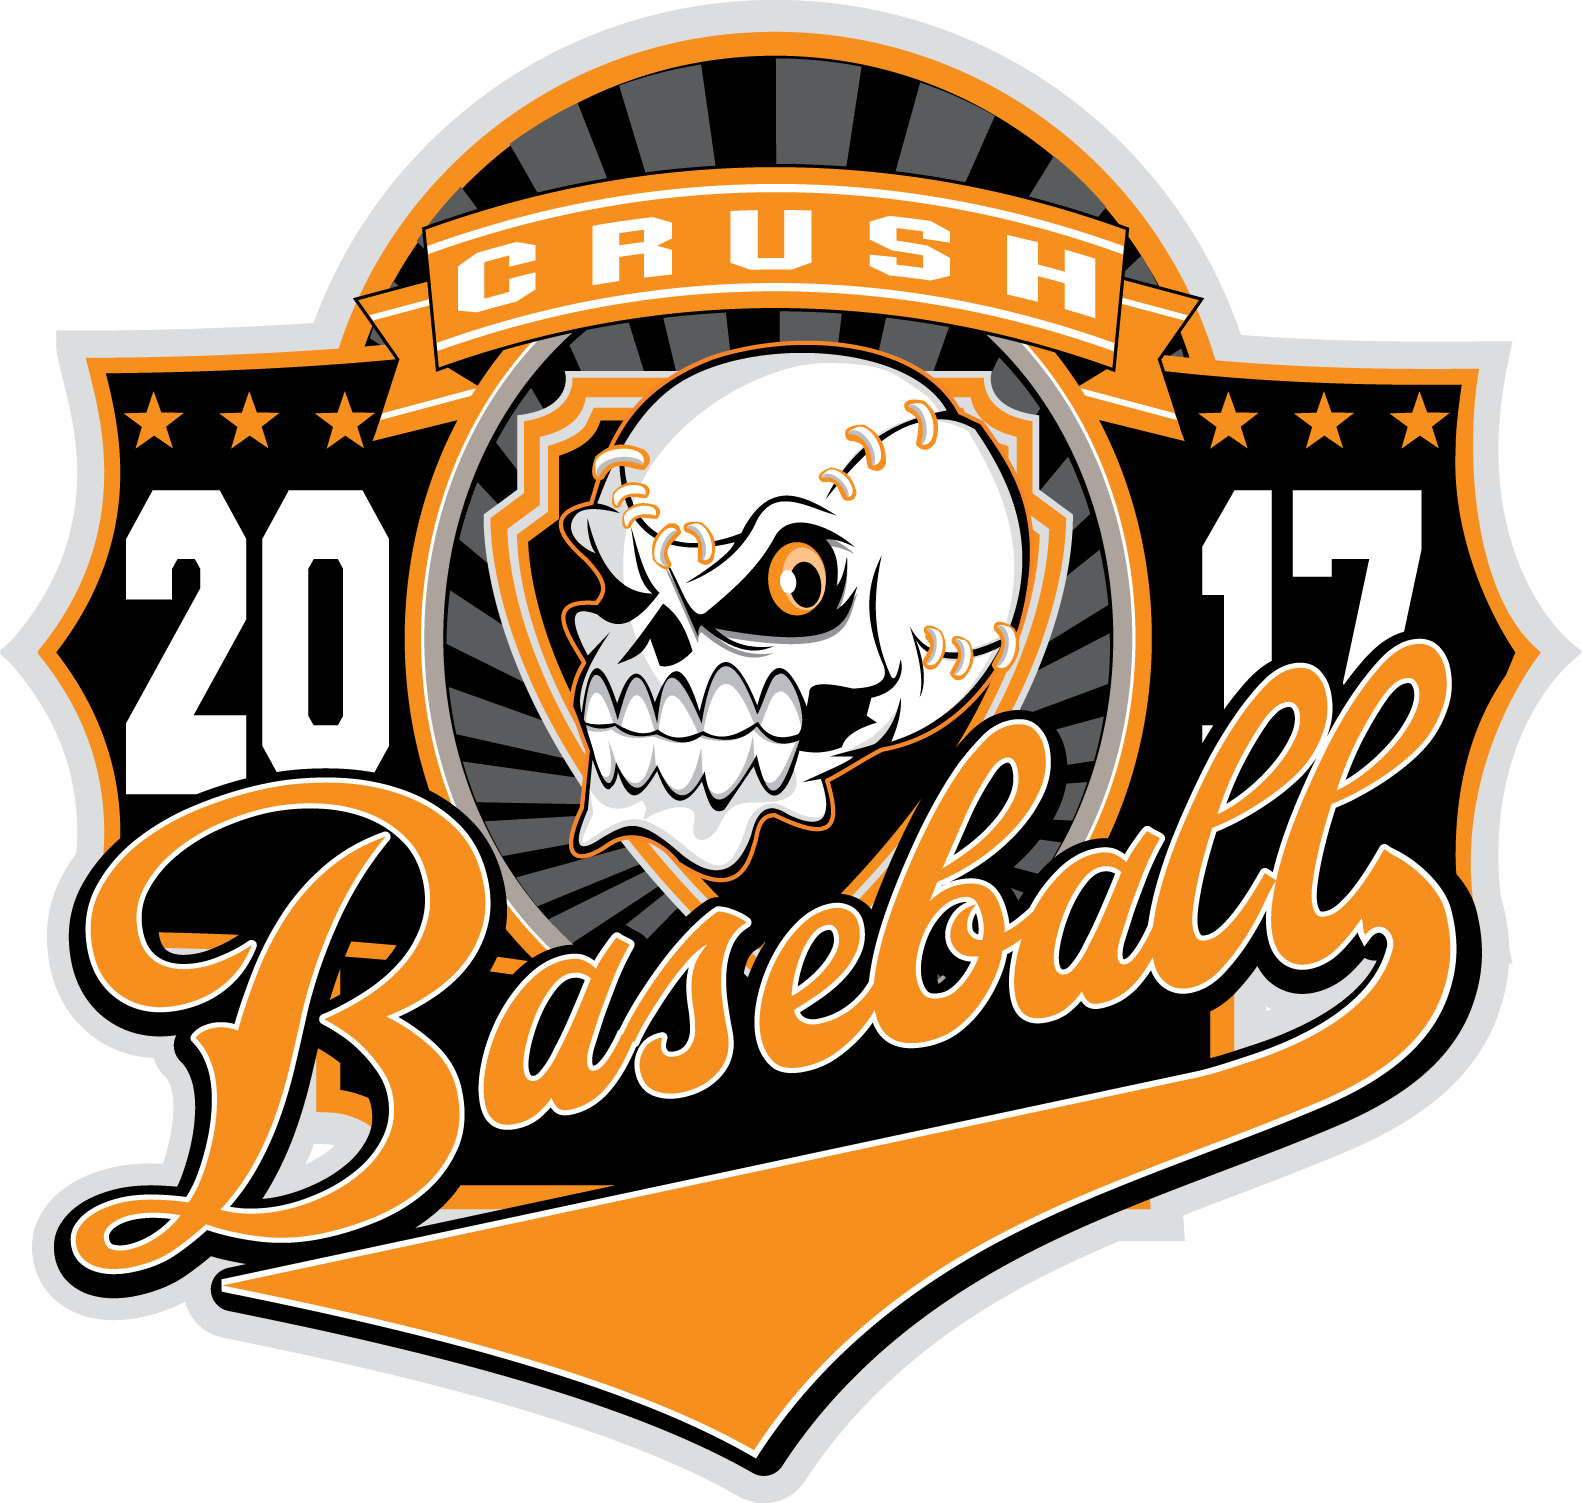 11U Crush Baseball